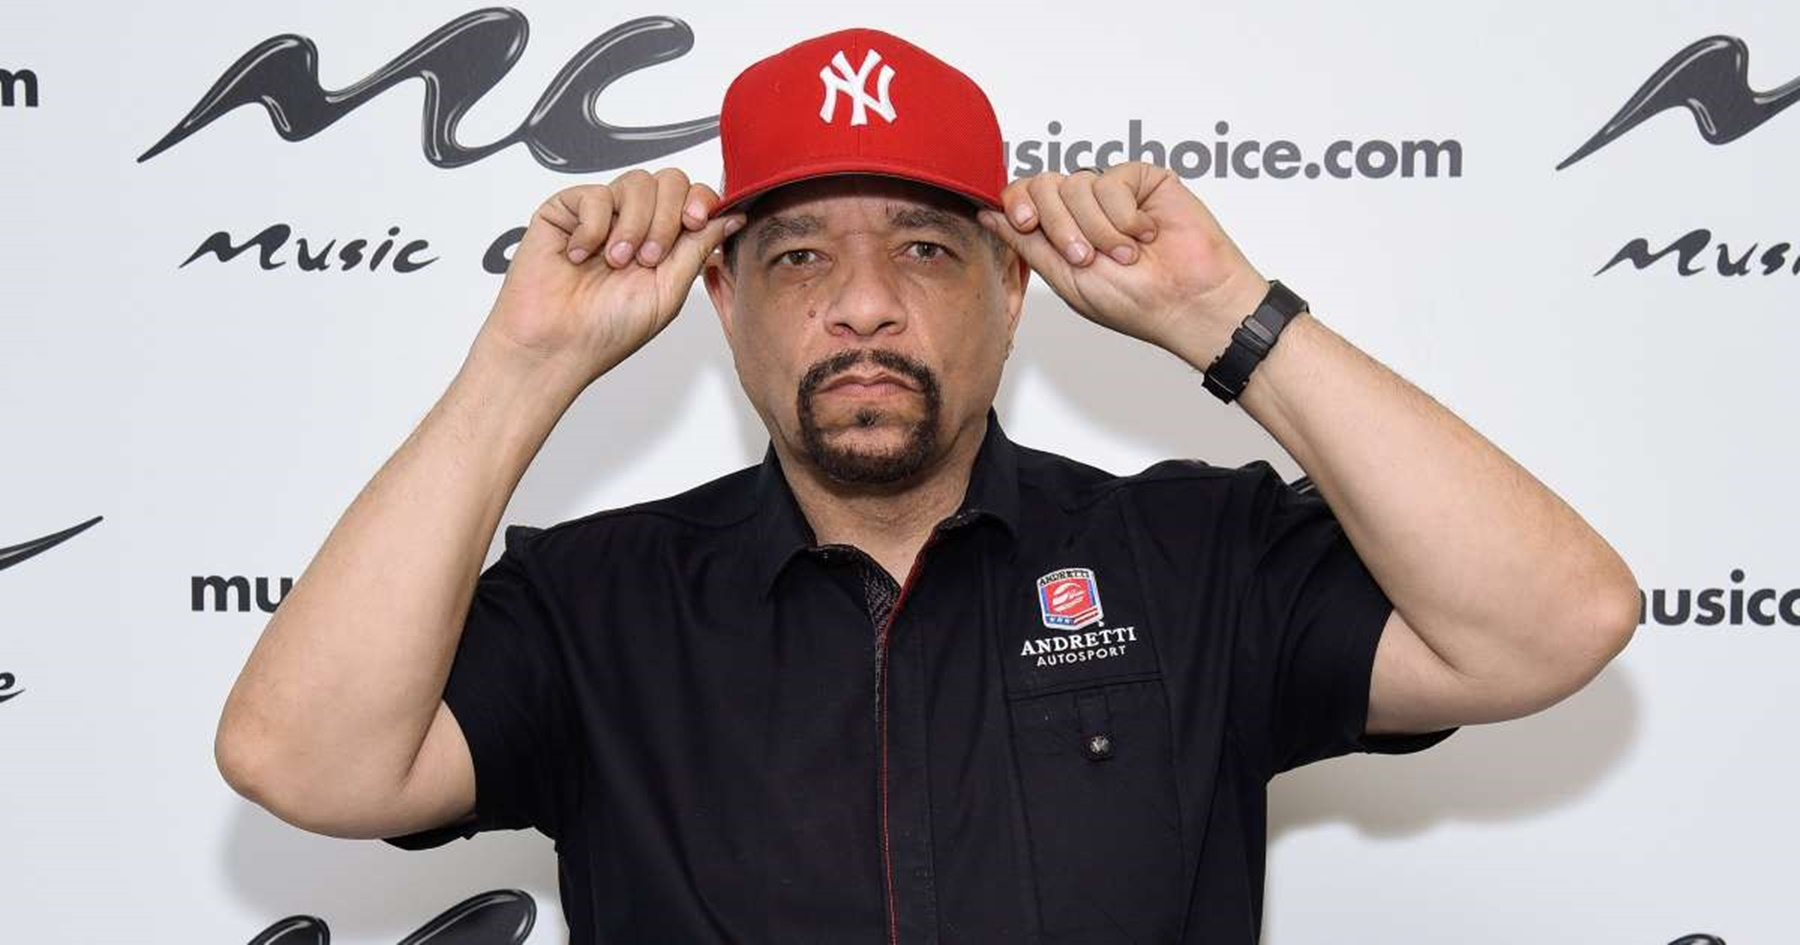 Ice-T Amazon Delivery People Identification